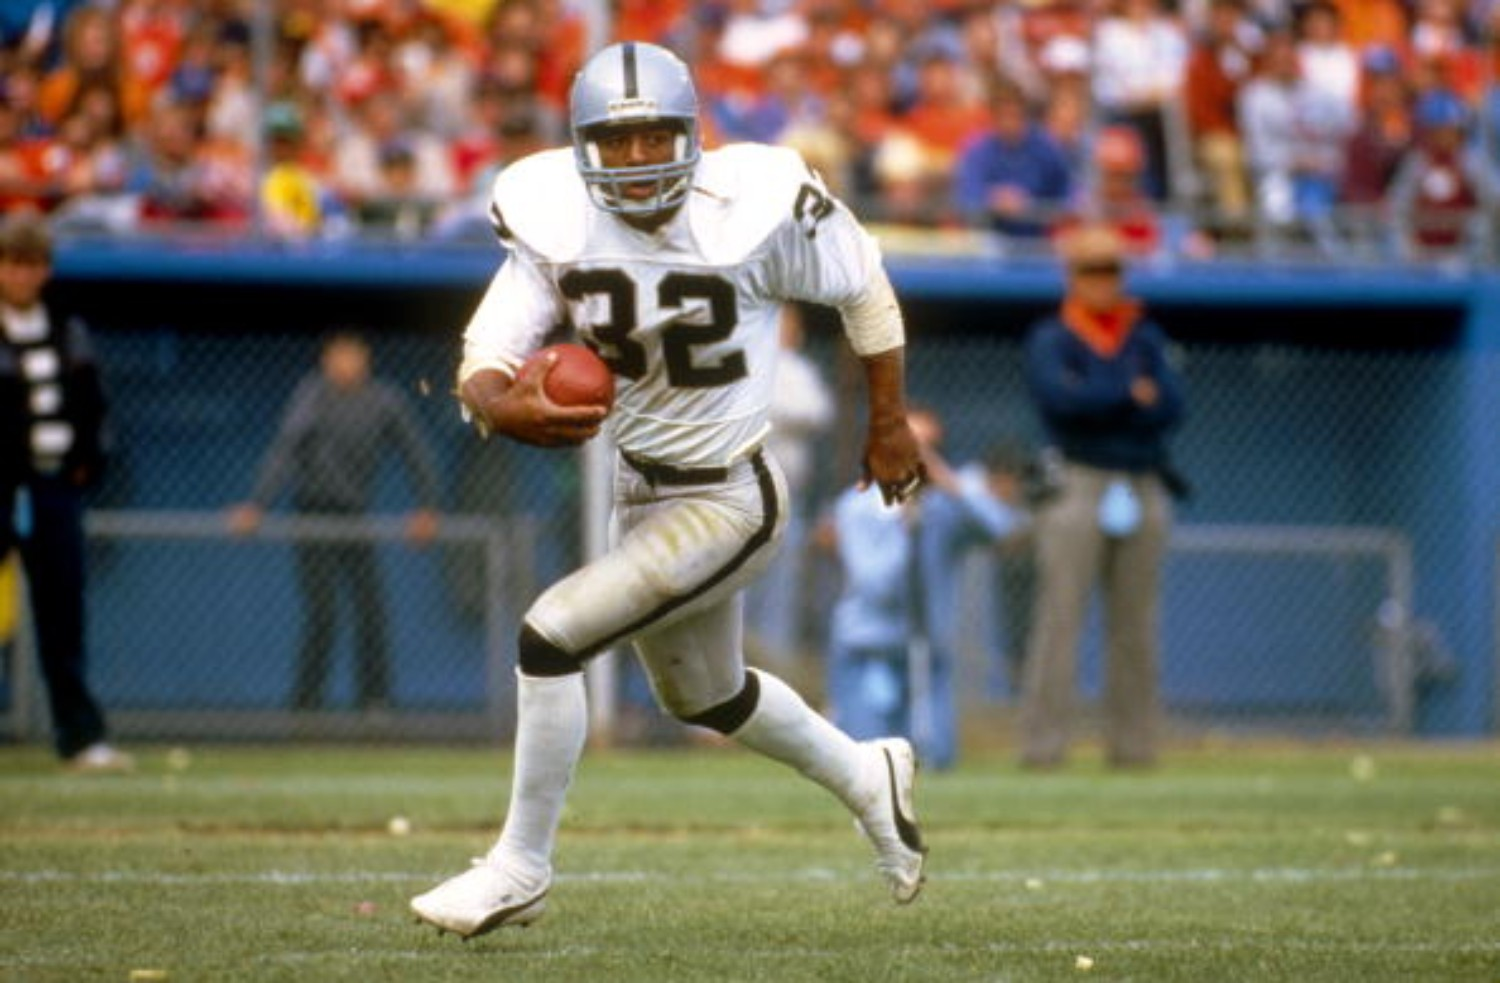 Marcus Allen had a lot of success throughout his NFL career